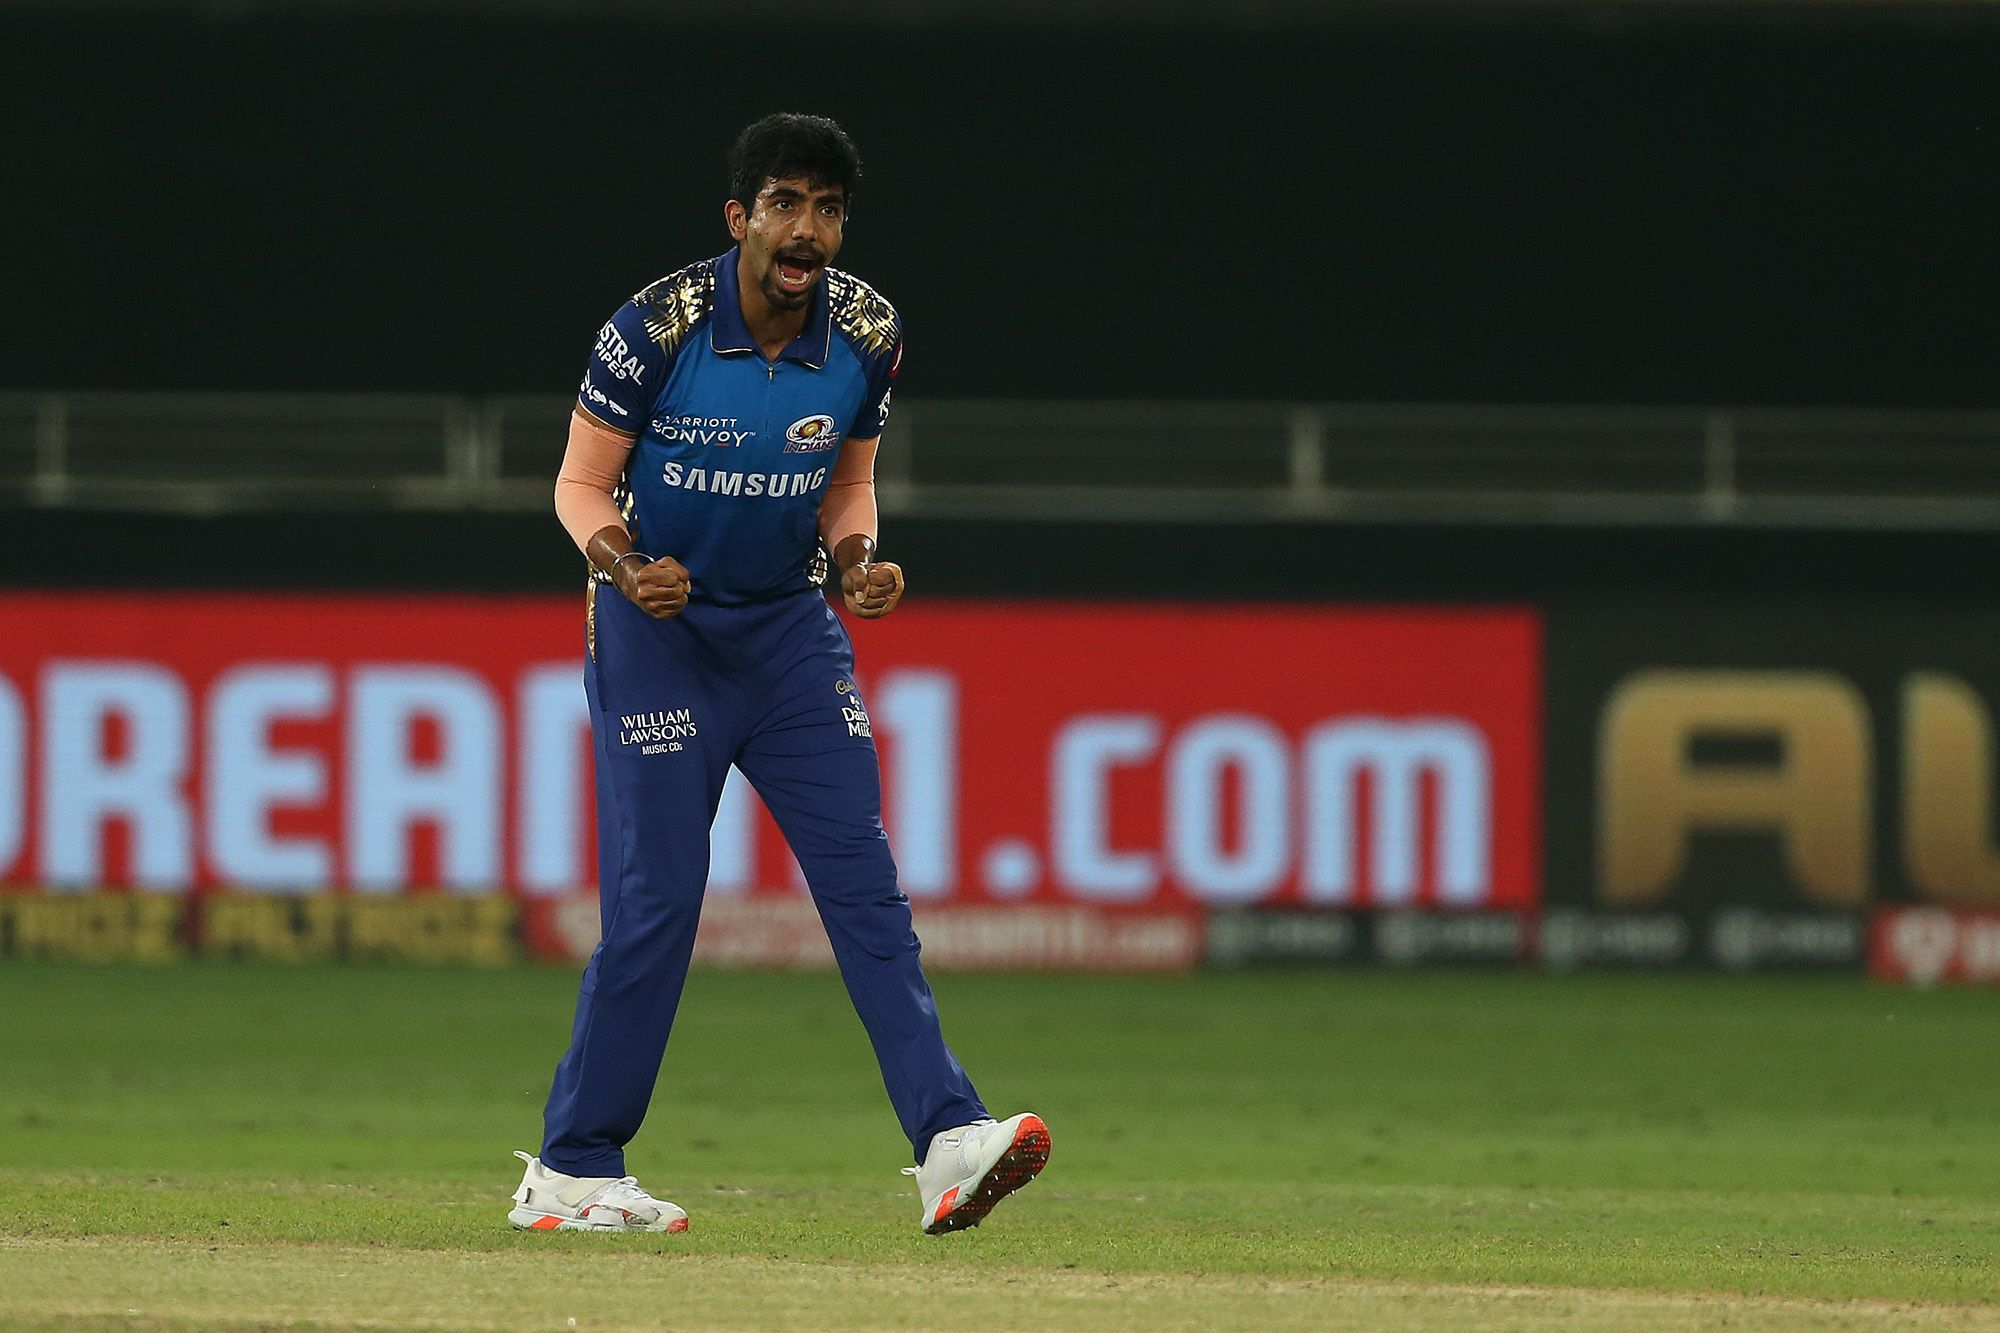 Shane Bond heaps praises on Bumrah after his brilliant show in Qualifier 1